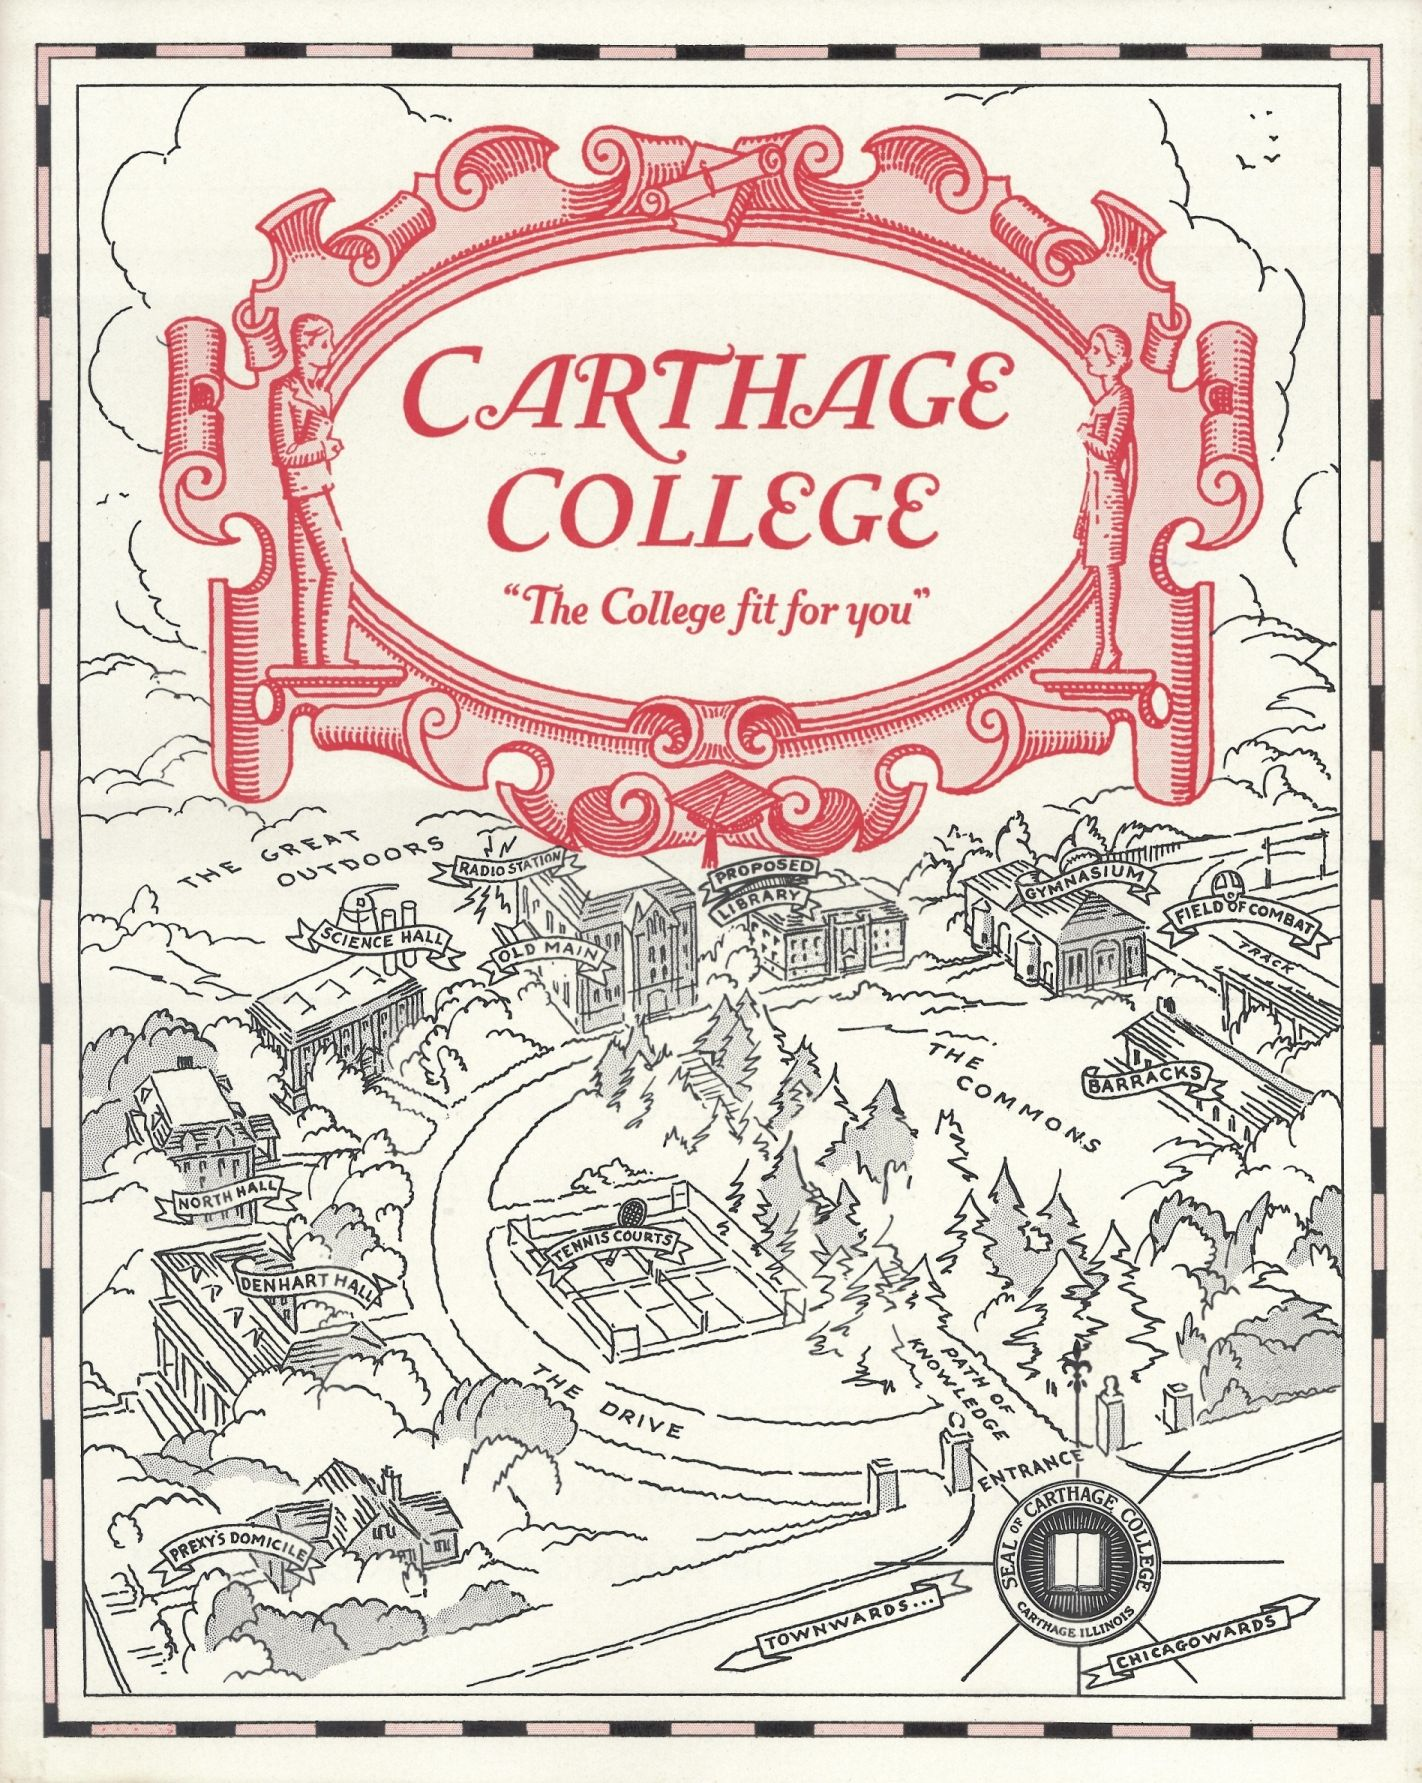 Carthage Illinois Campus Map 1926 Staubitz Archives Digital